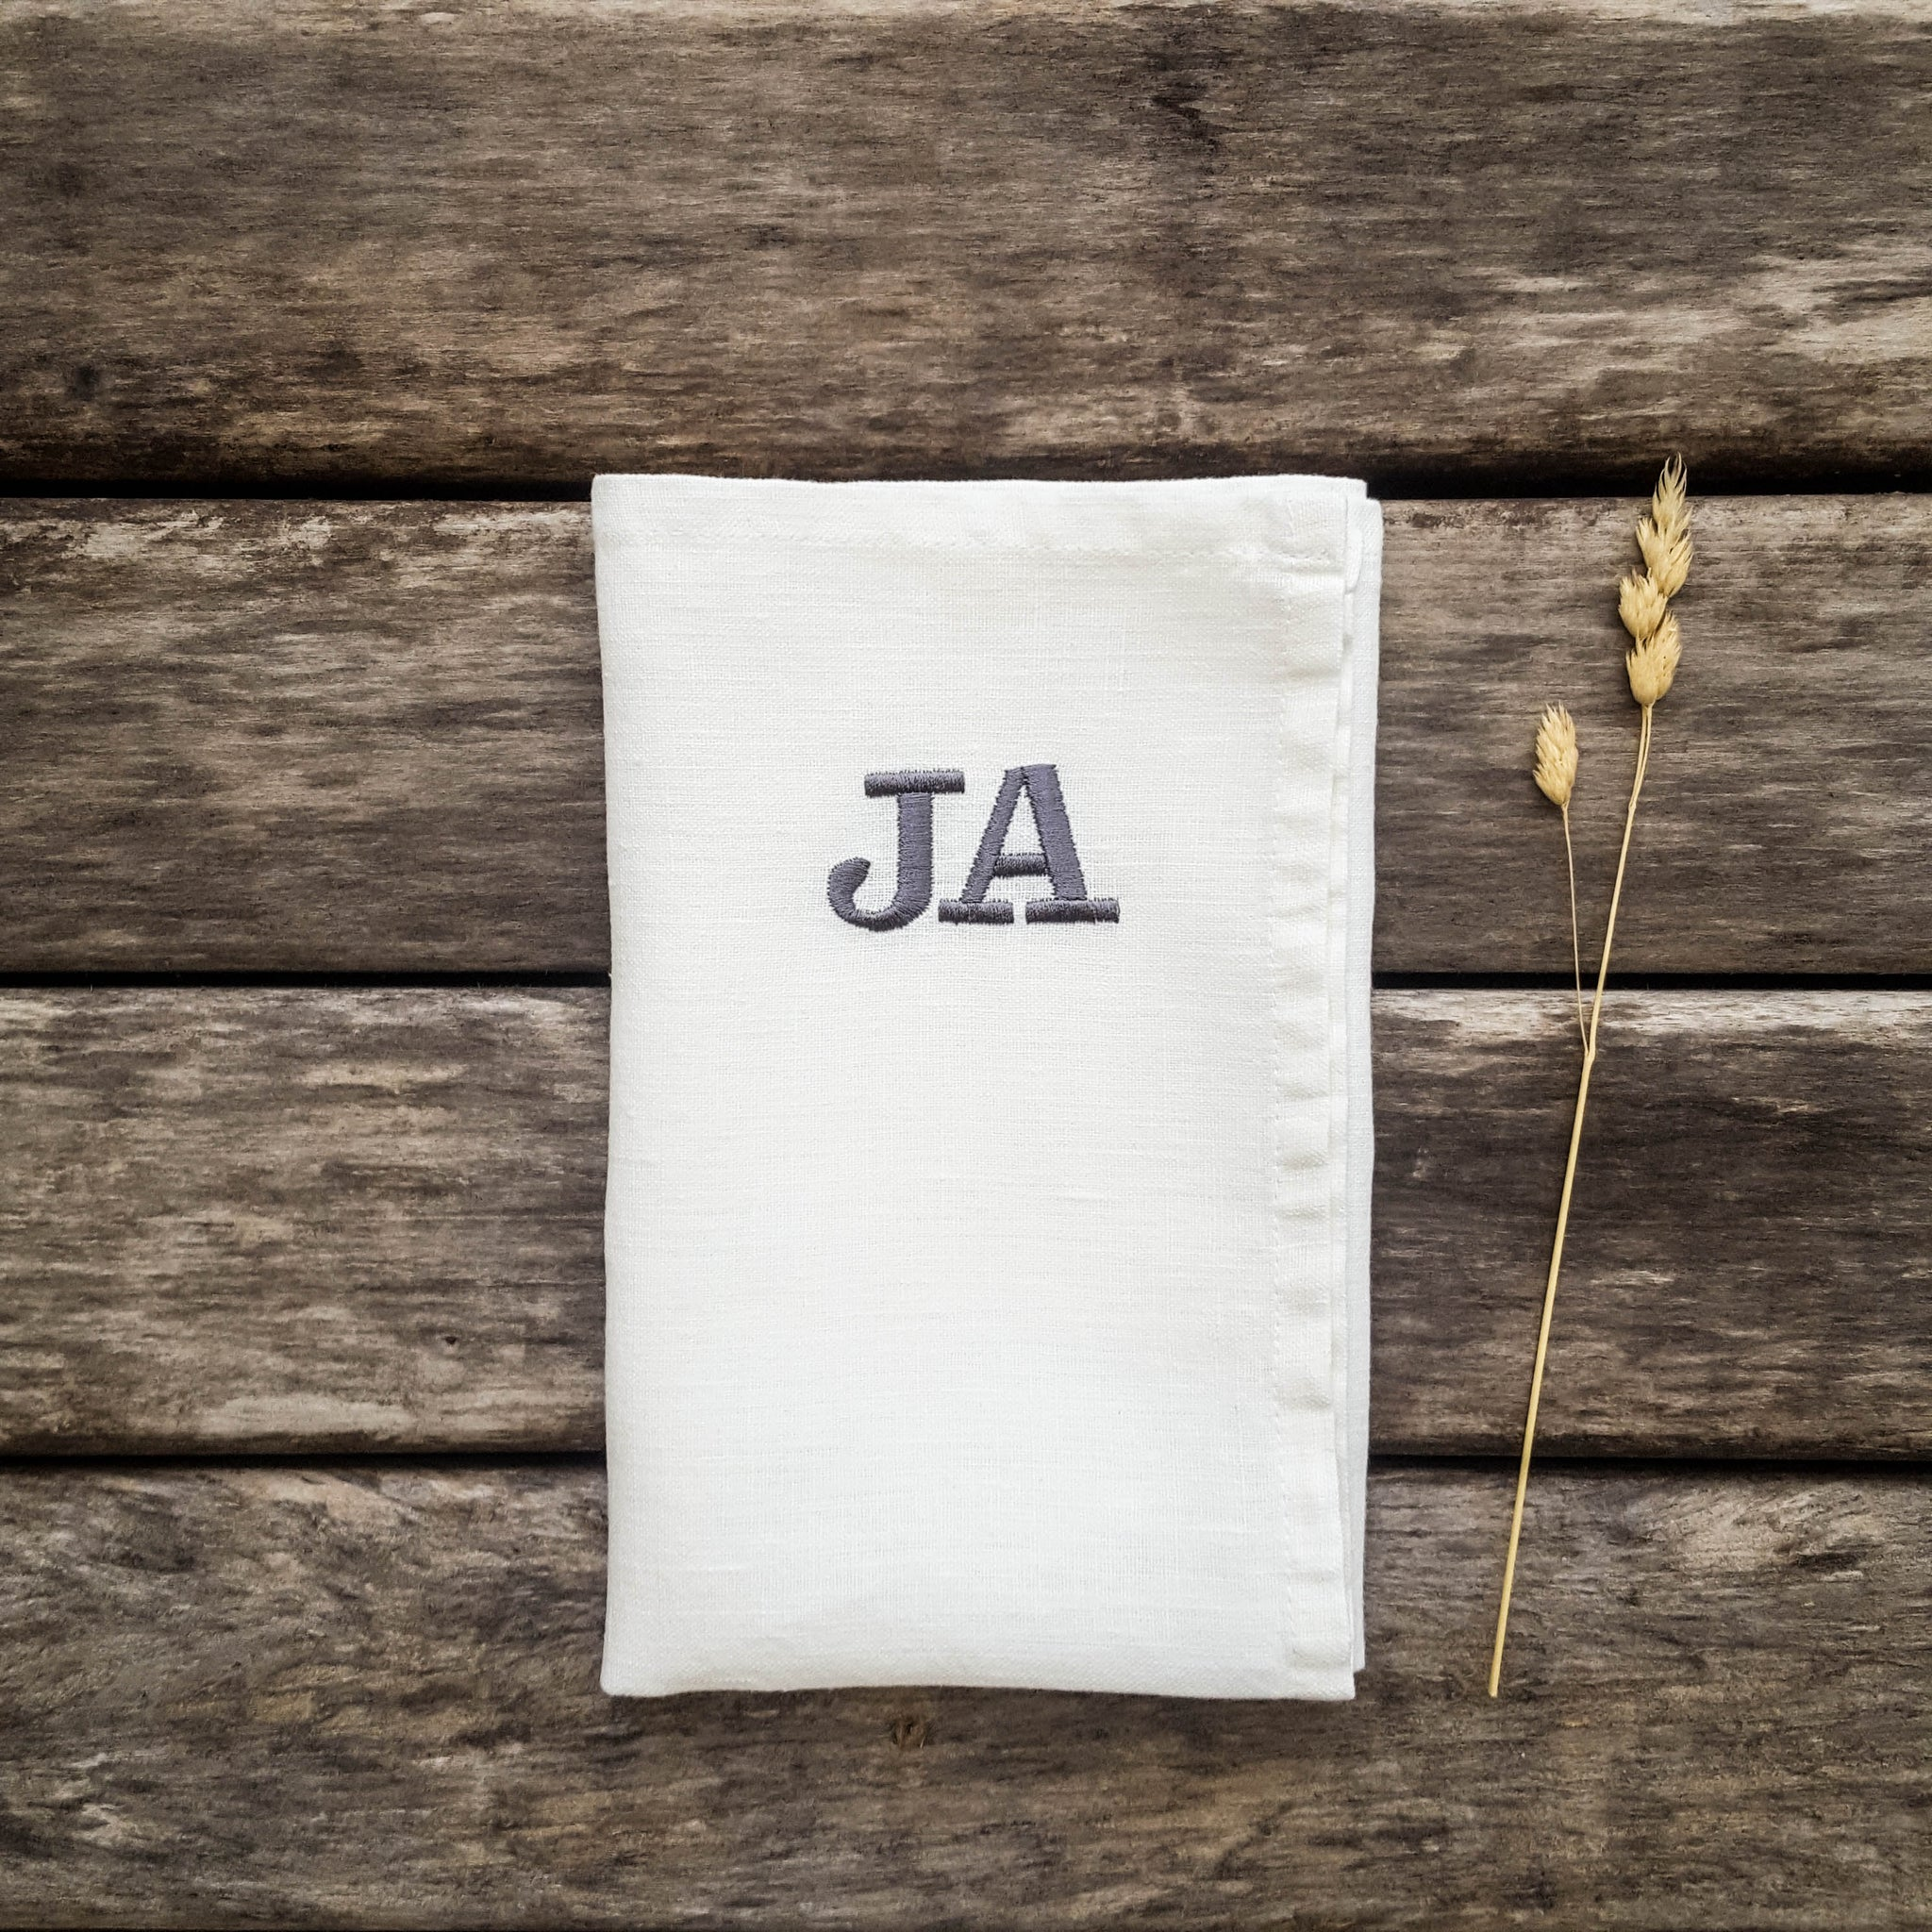 Monogrammed linen napkins in various colors. Clarendon font.